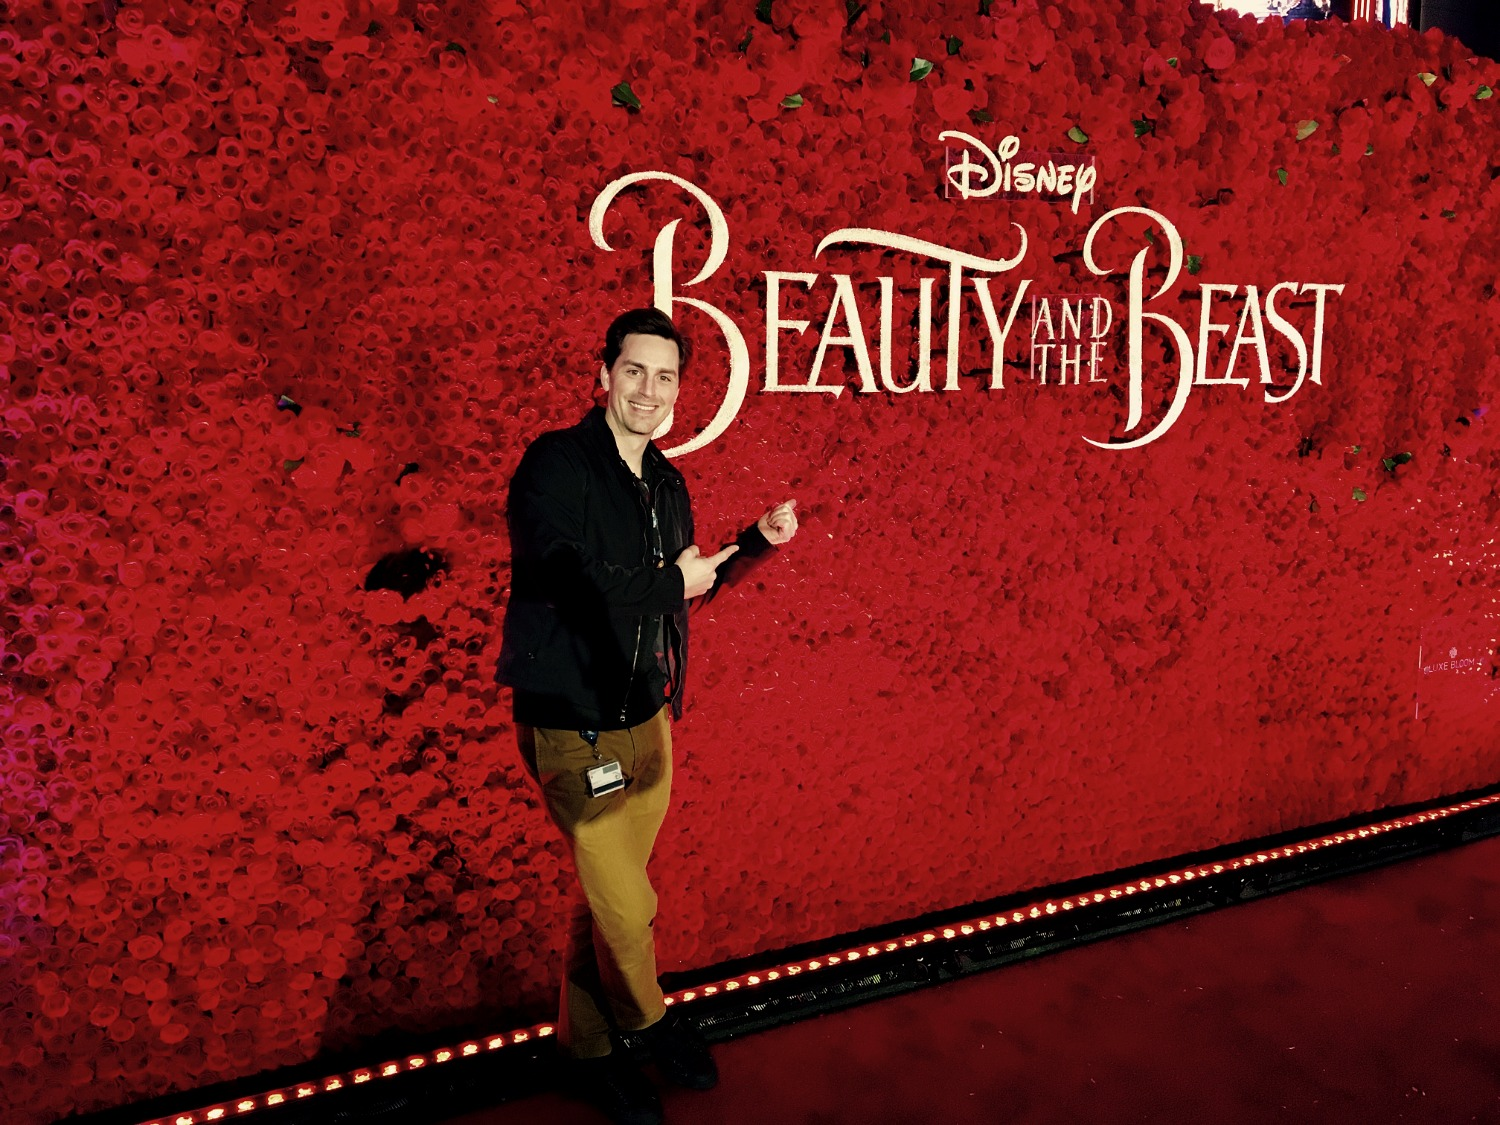 Beauty and the Beast World Premiere